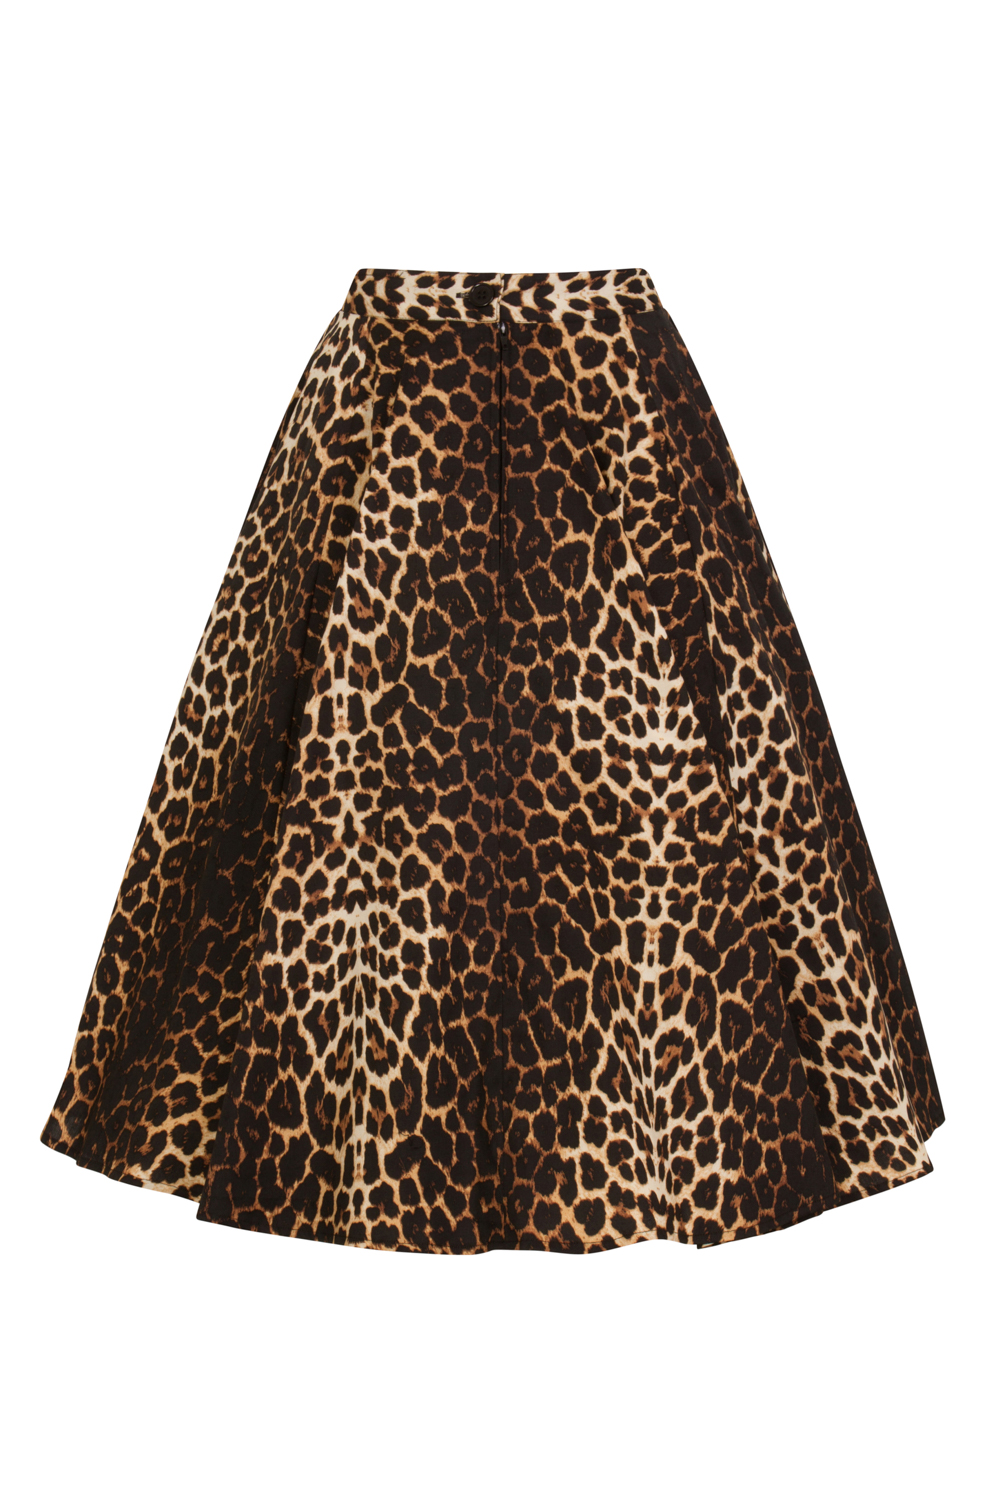 Panthera 50 s Skirt From 72893a468